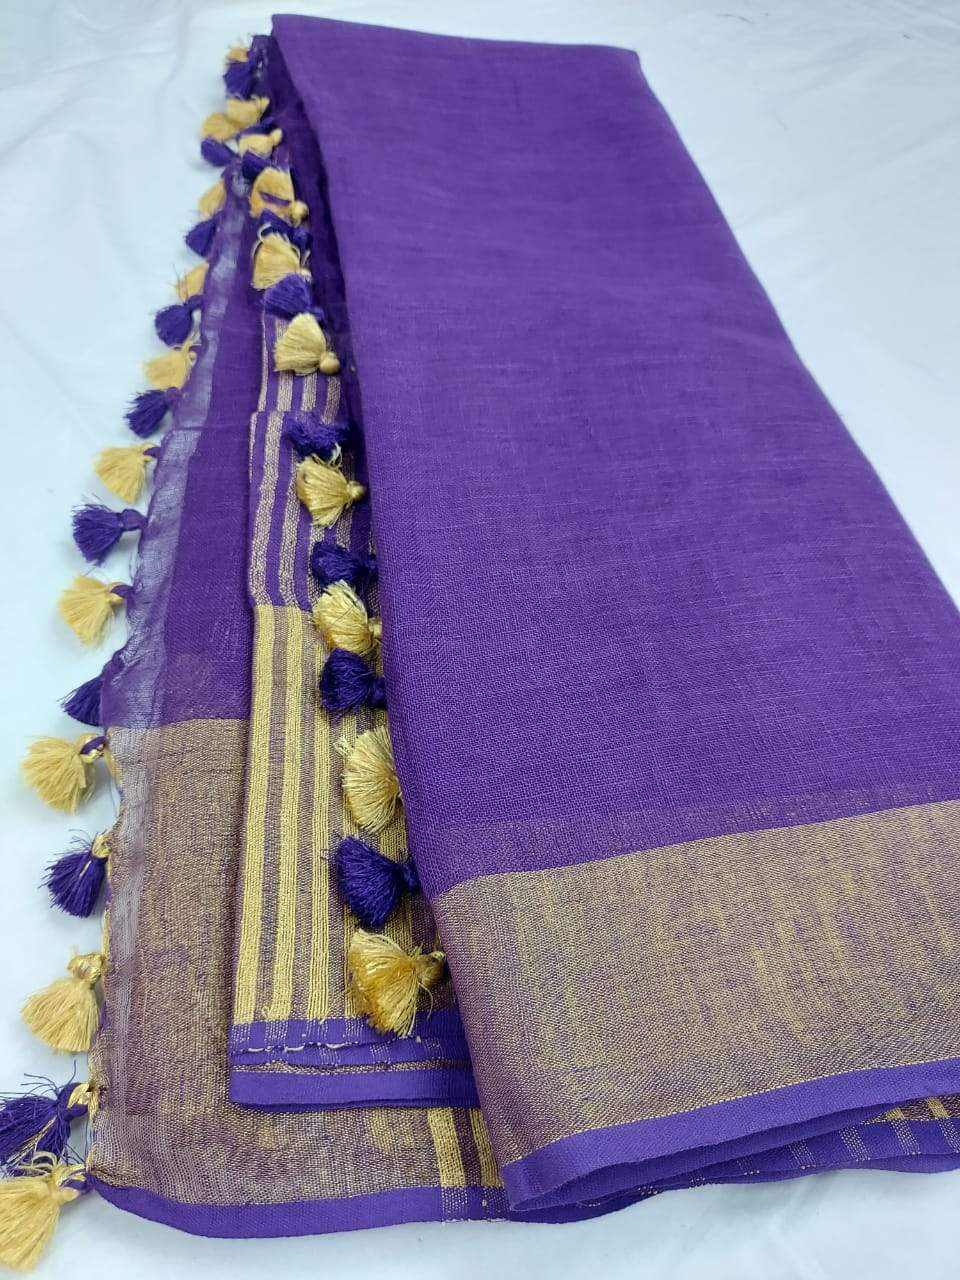 Blue Pure Linen Saree With Pompom,authentic linen saree, digital printed linen saree, line sarees online